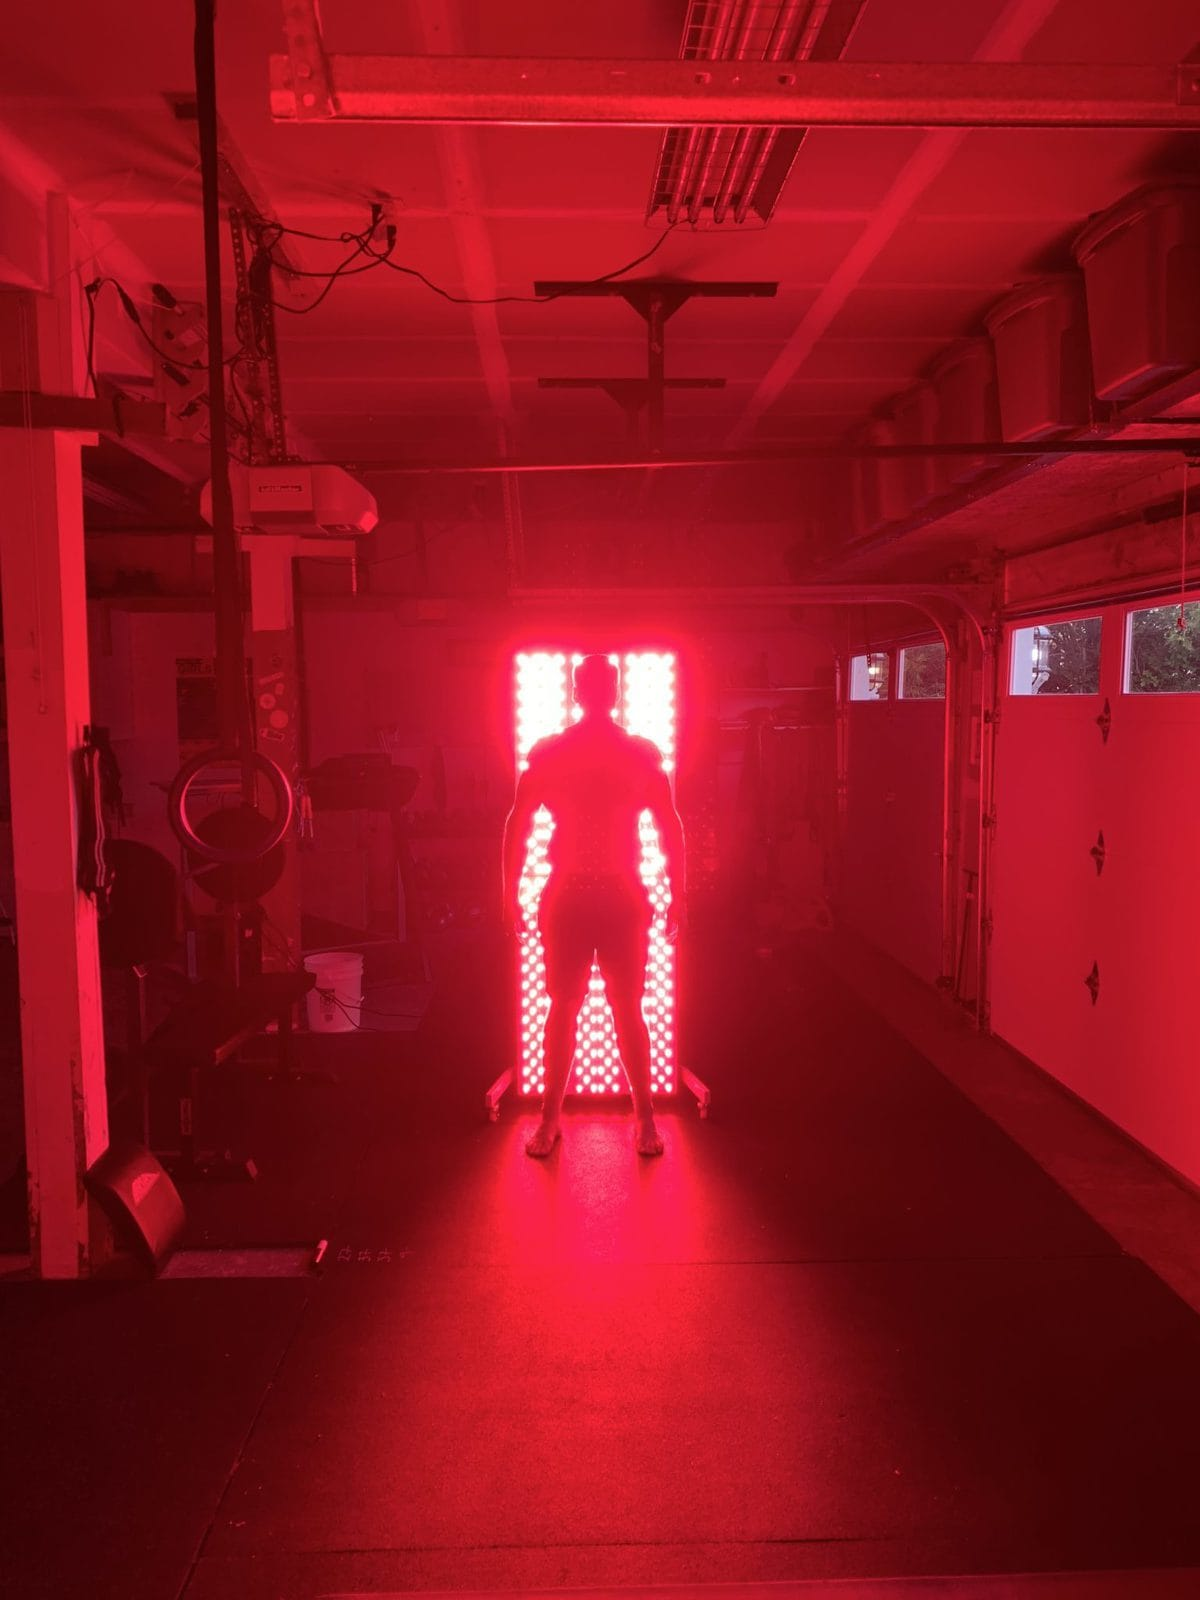 Jon Standing in front of the Joovv Elite red light therapy system for an all over body treatment